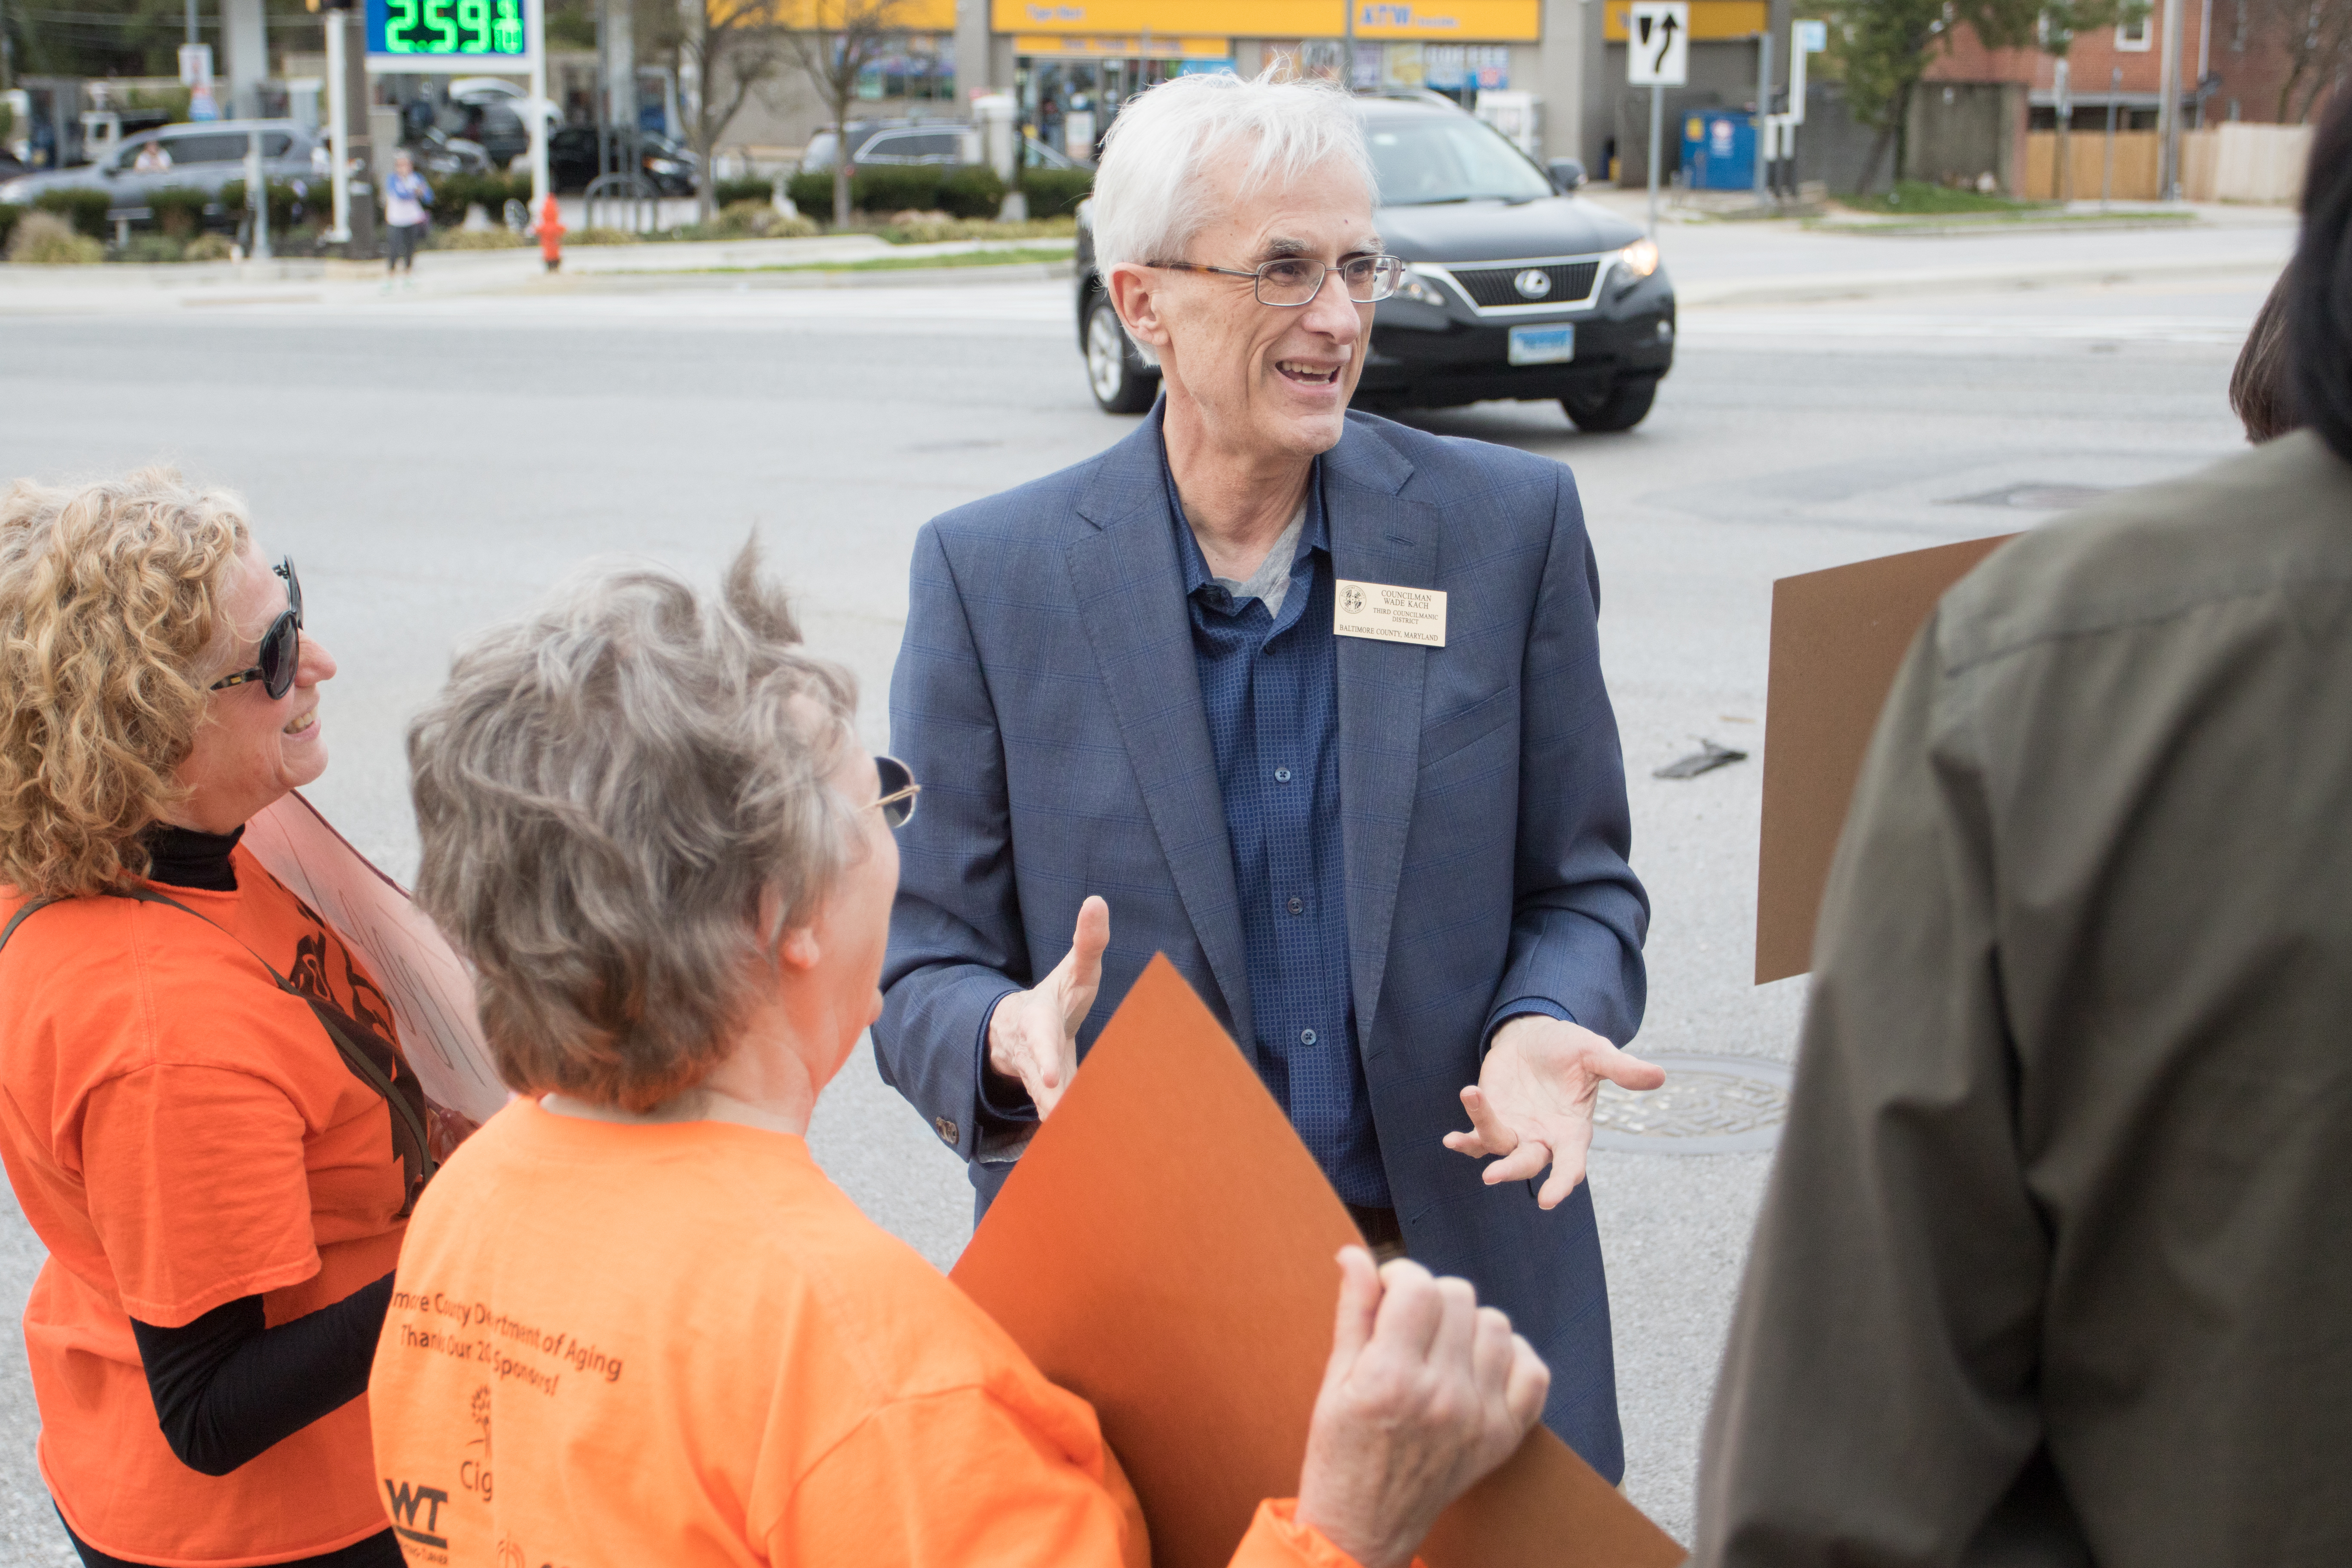 Councilman Wade Kach, R-District 3, (center) talks with protesters at York Road and Bosley Avenue on Wednesday. Photo by Nick Rynes.